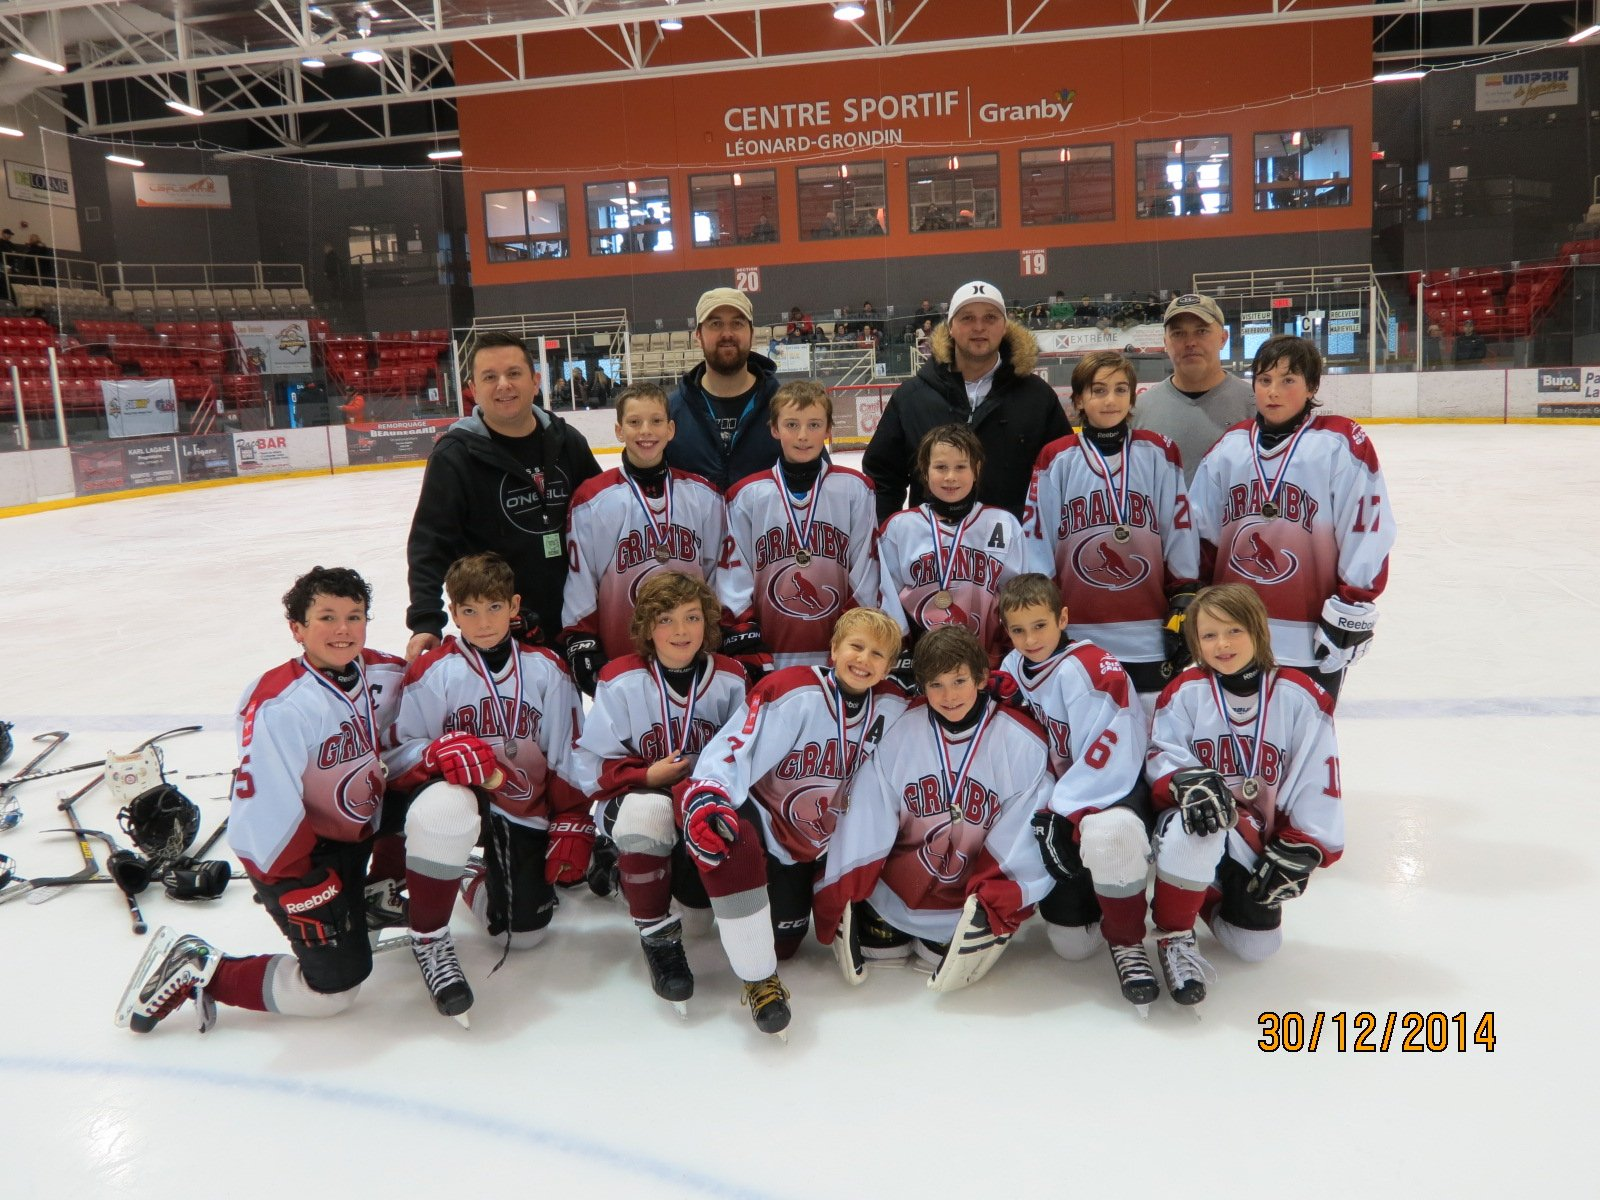 Rencontre hockey atome granby 2016